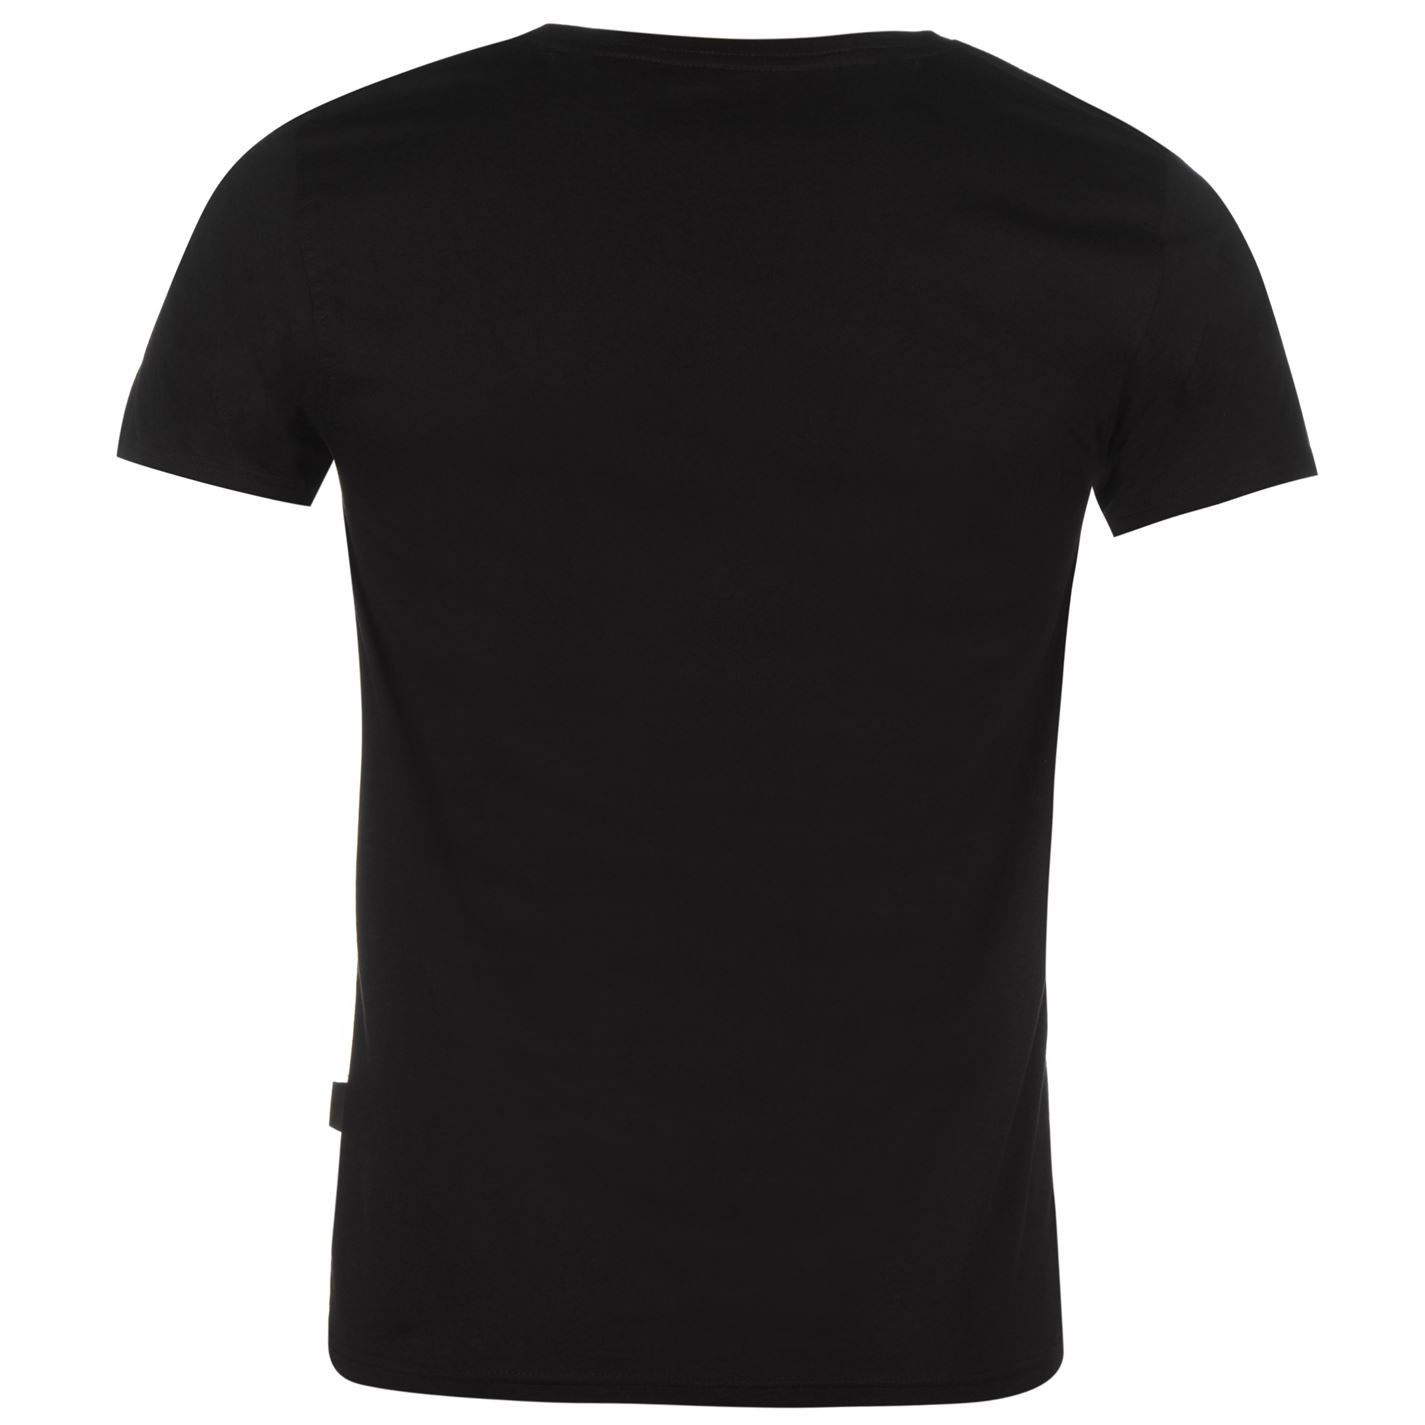 Mens Crew Neck Shirt Official Nine Inch Nails T Tee Top Short Sleeve ...